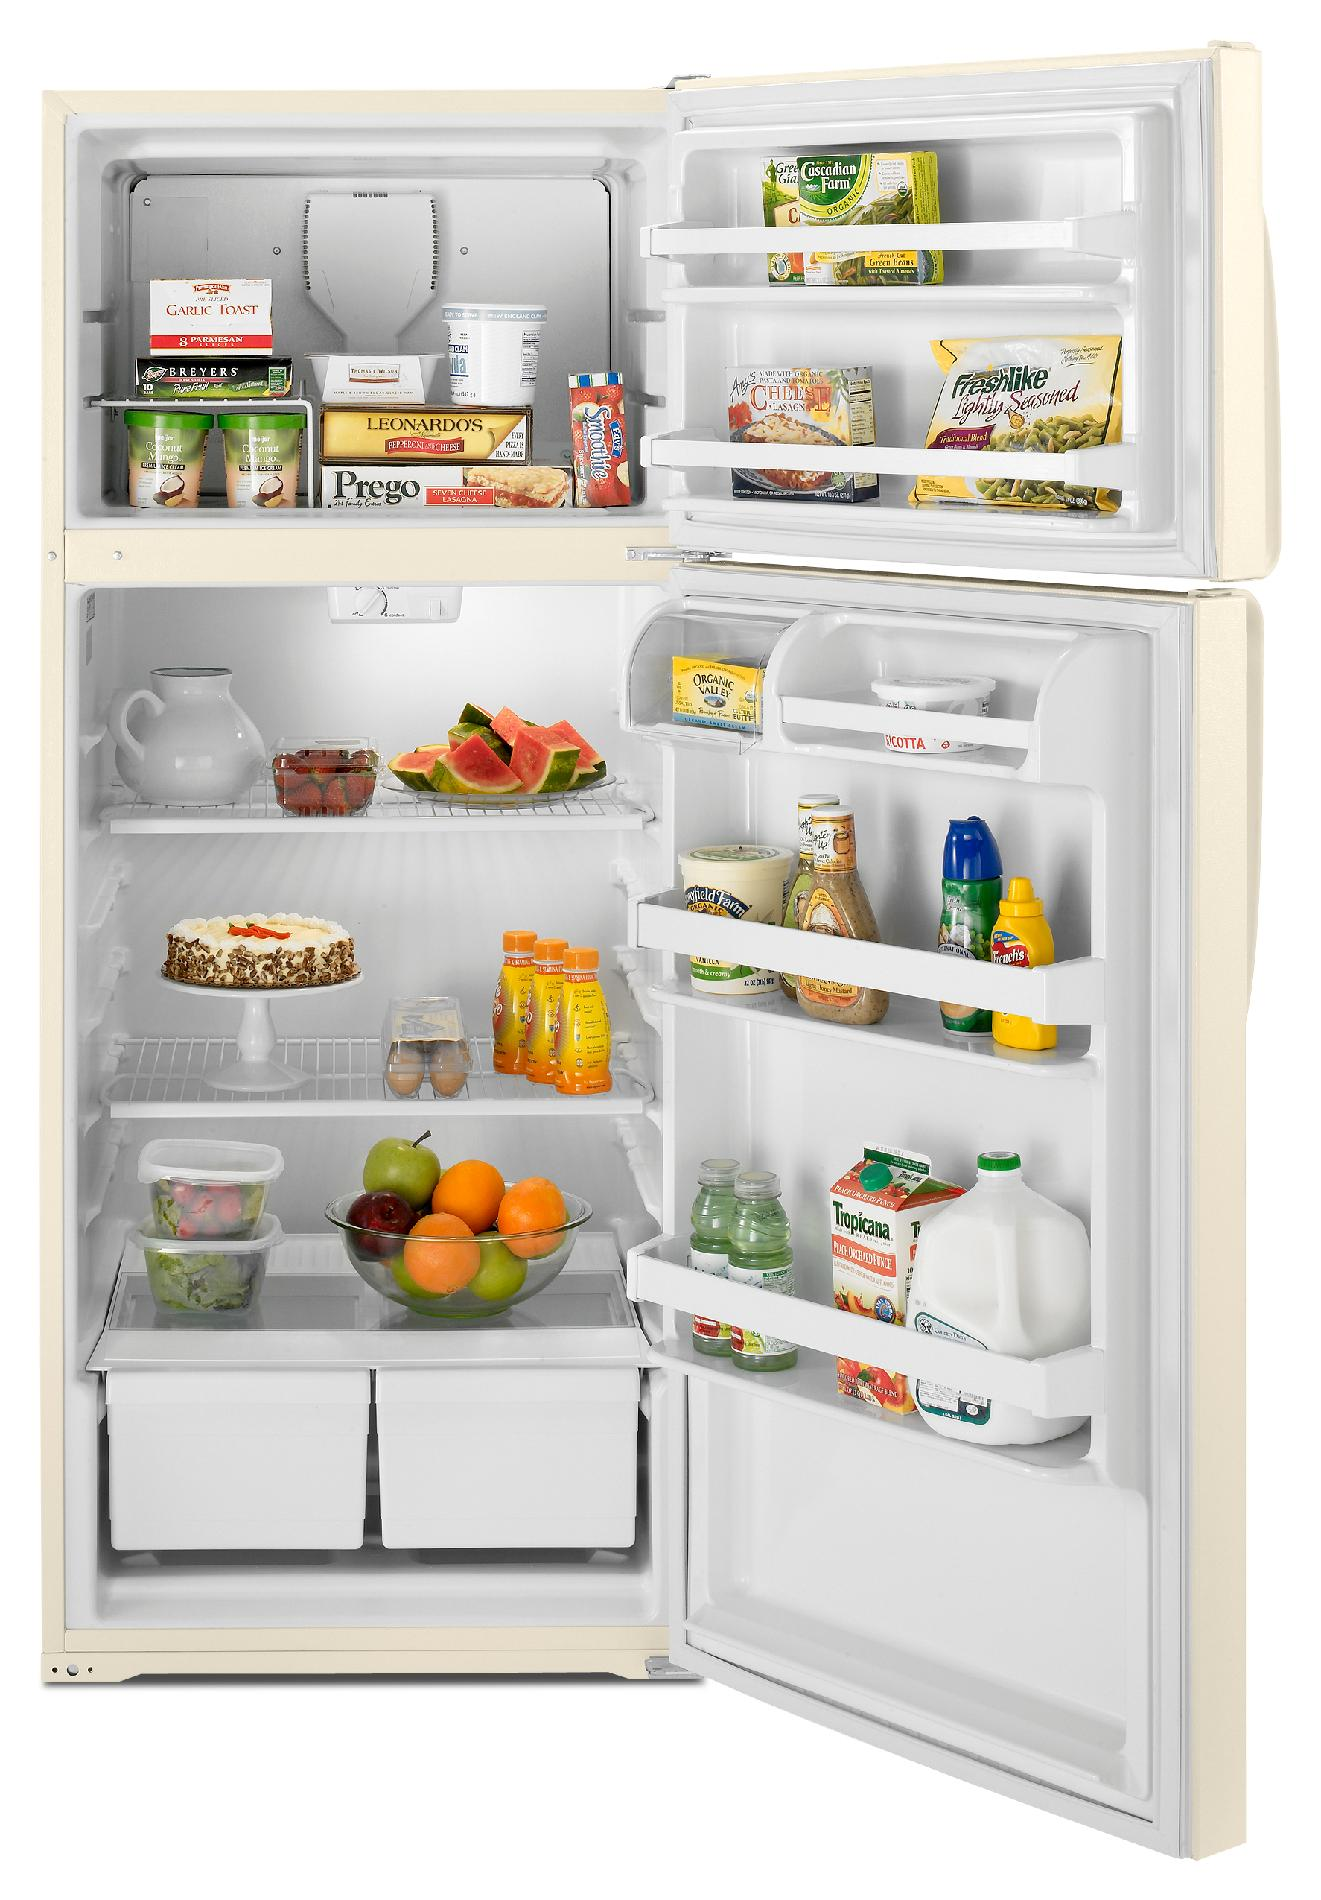 Whirlpool 17.6 cu. ft. Top-Freezer Refrigerator - Bisque